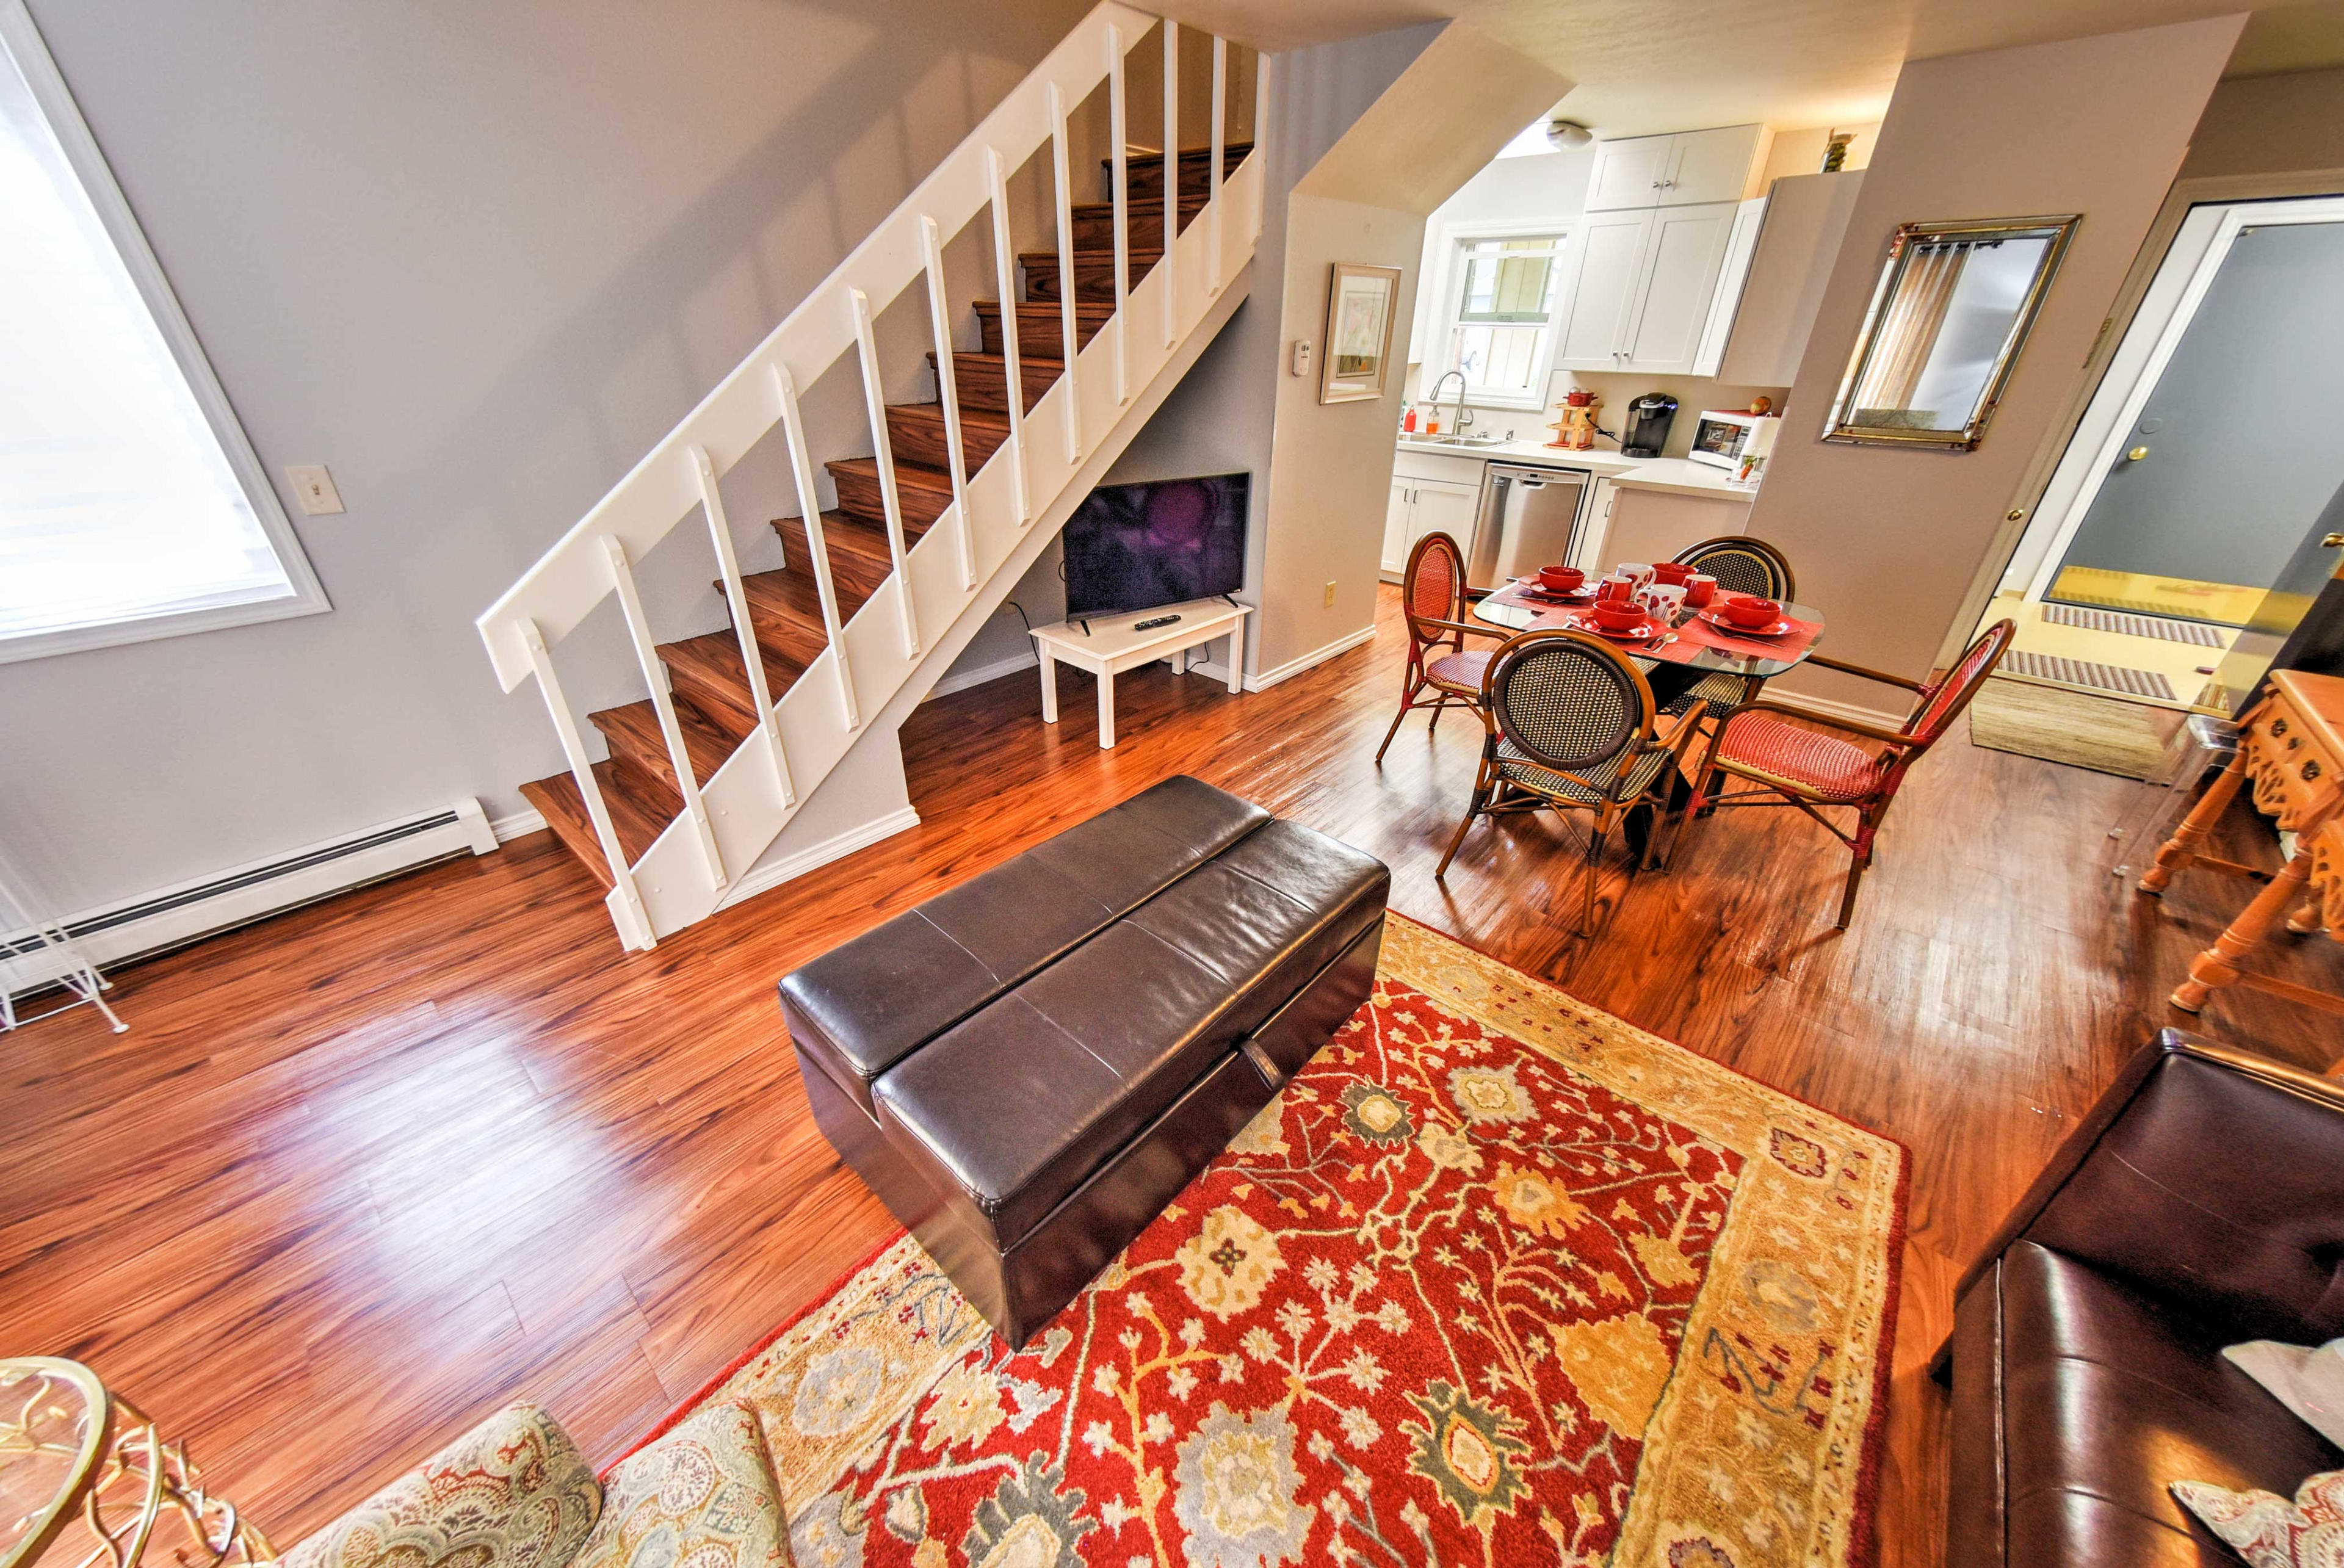 Follow the stairs to access the home's bedrooms.